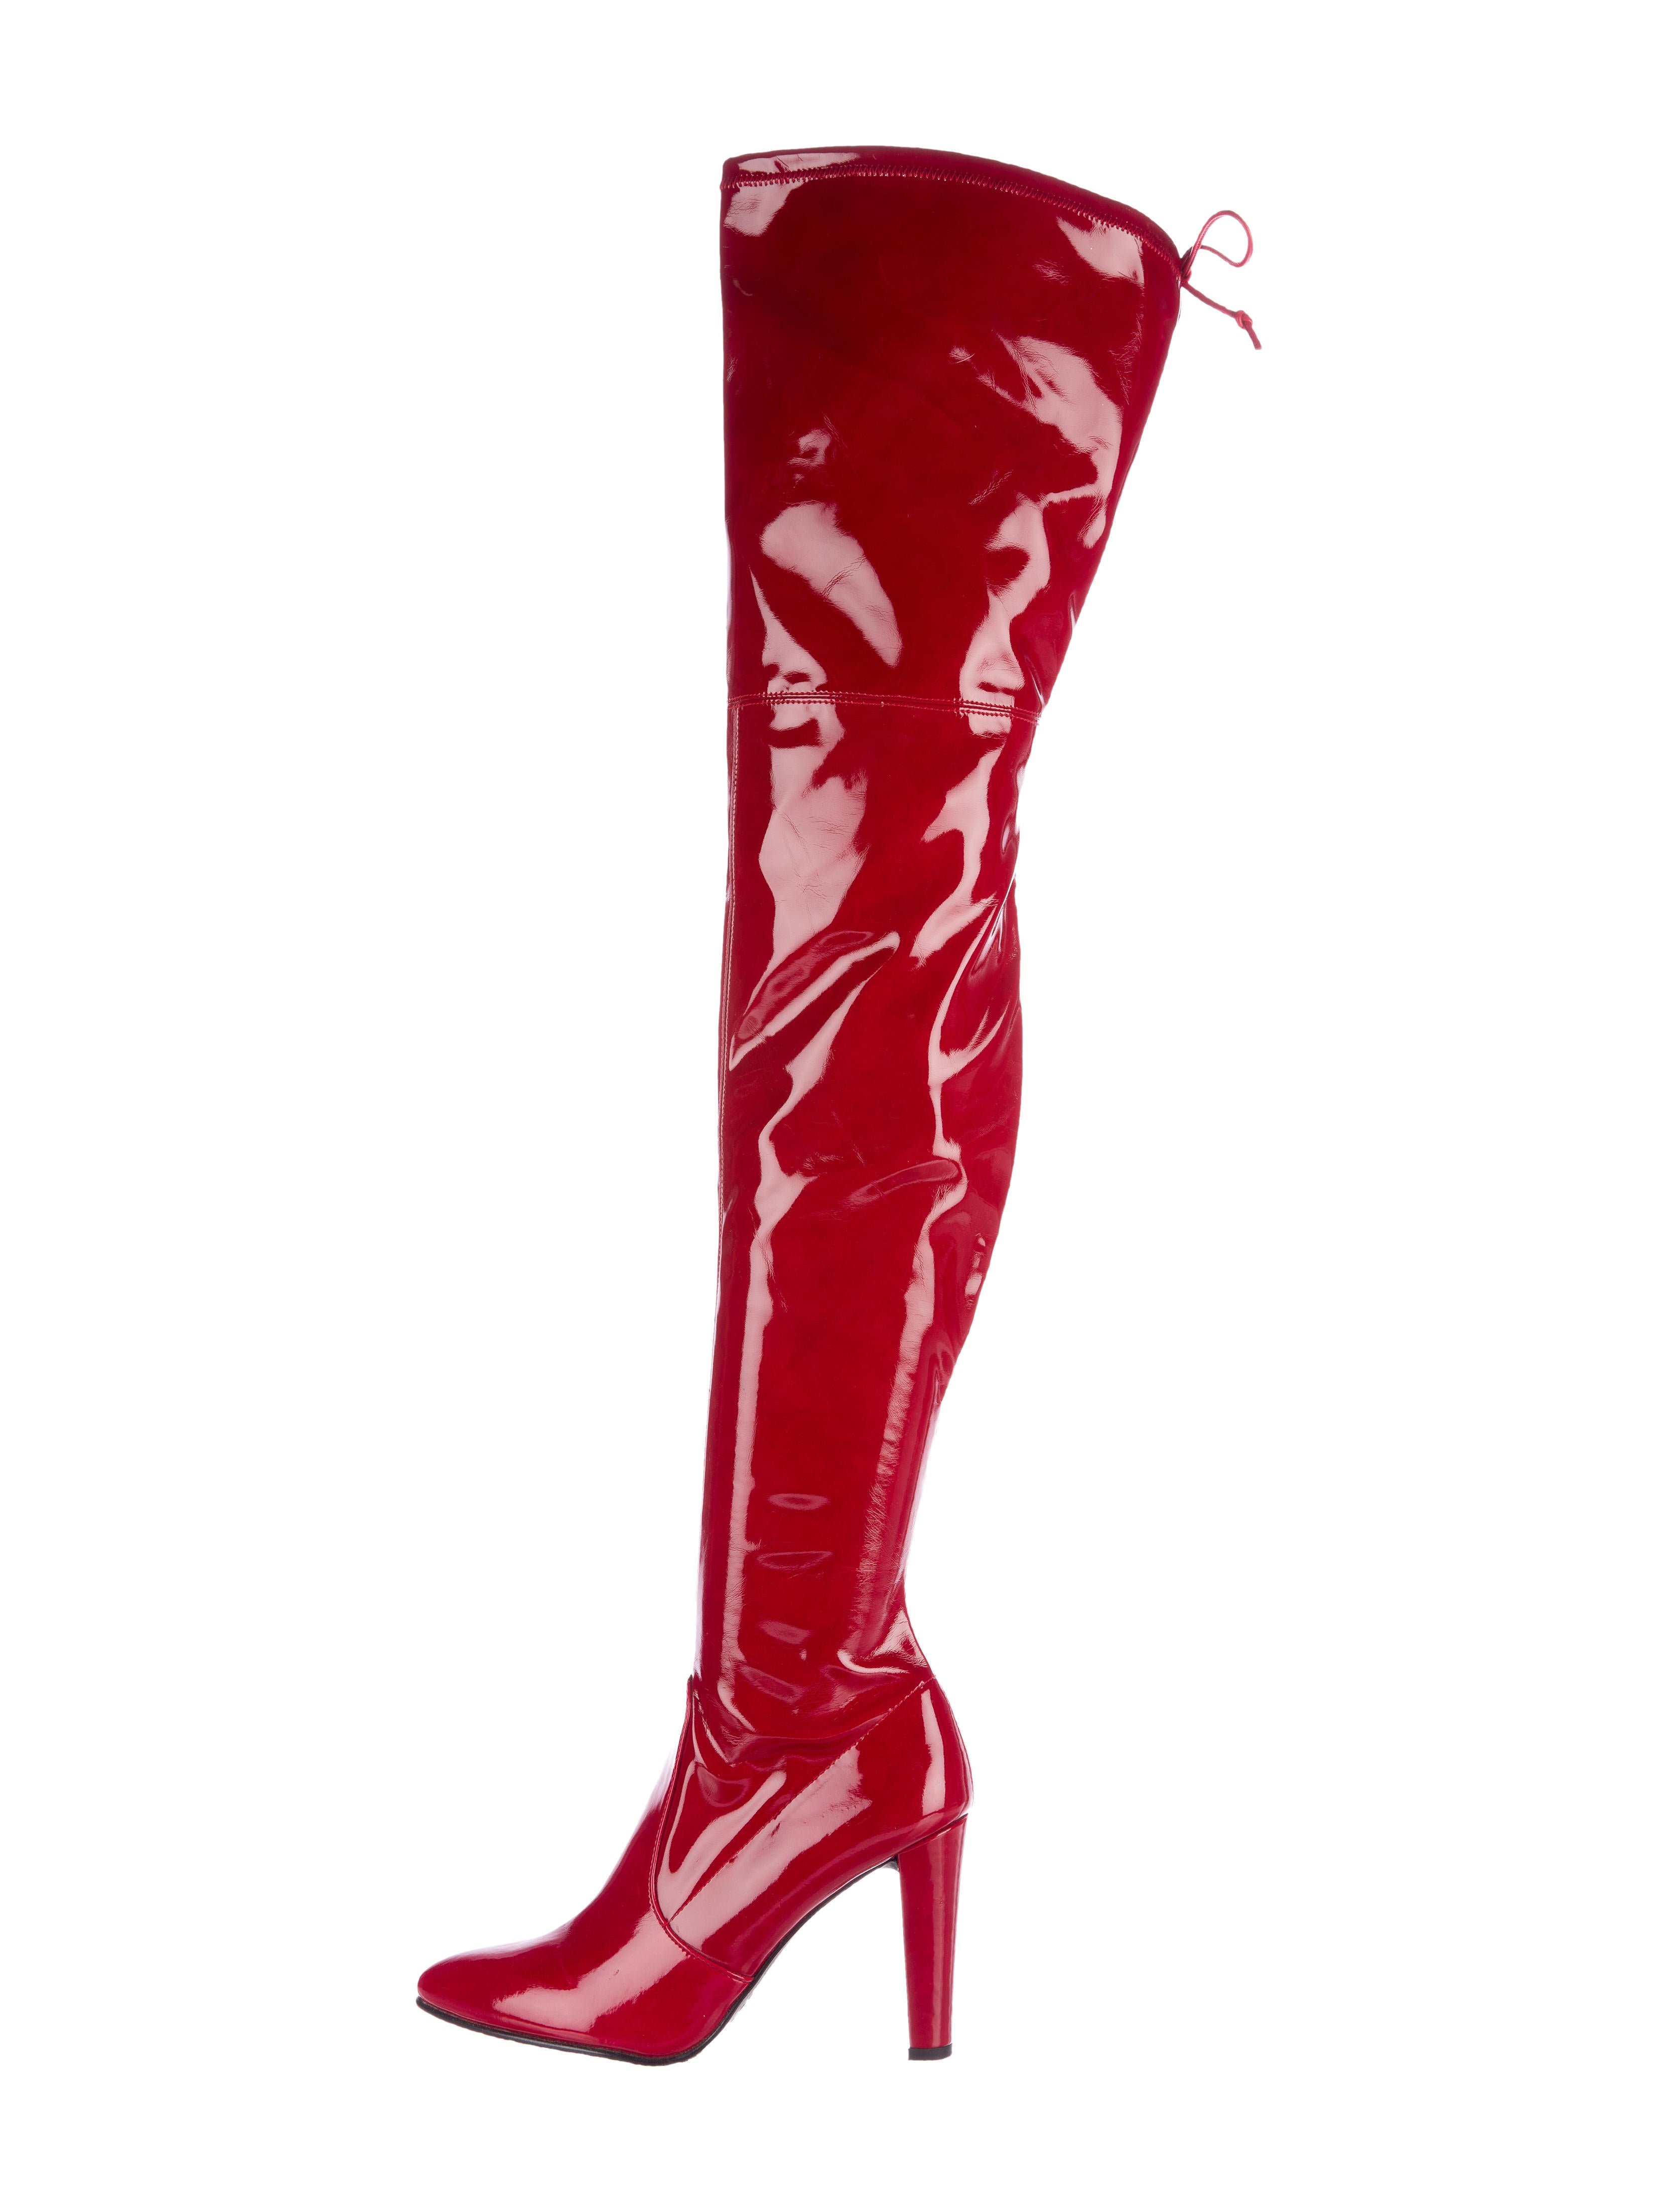 272b95ed06 ... Heel Red Patent Leather Women-s Knee-High. Stuart Weitzman Patent  Leather Thigh-High Boots - Shoes - WSU24845 .